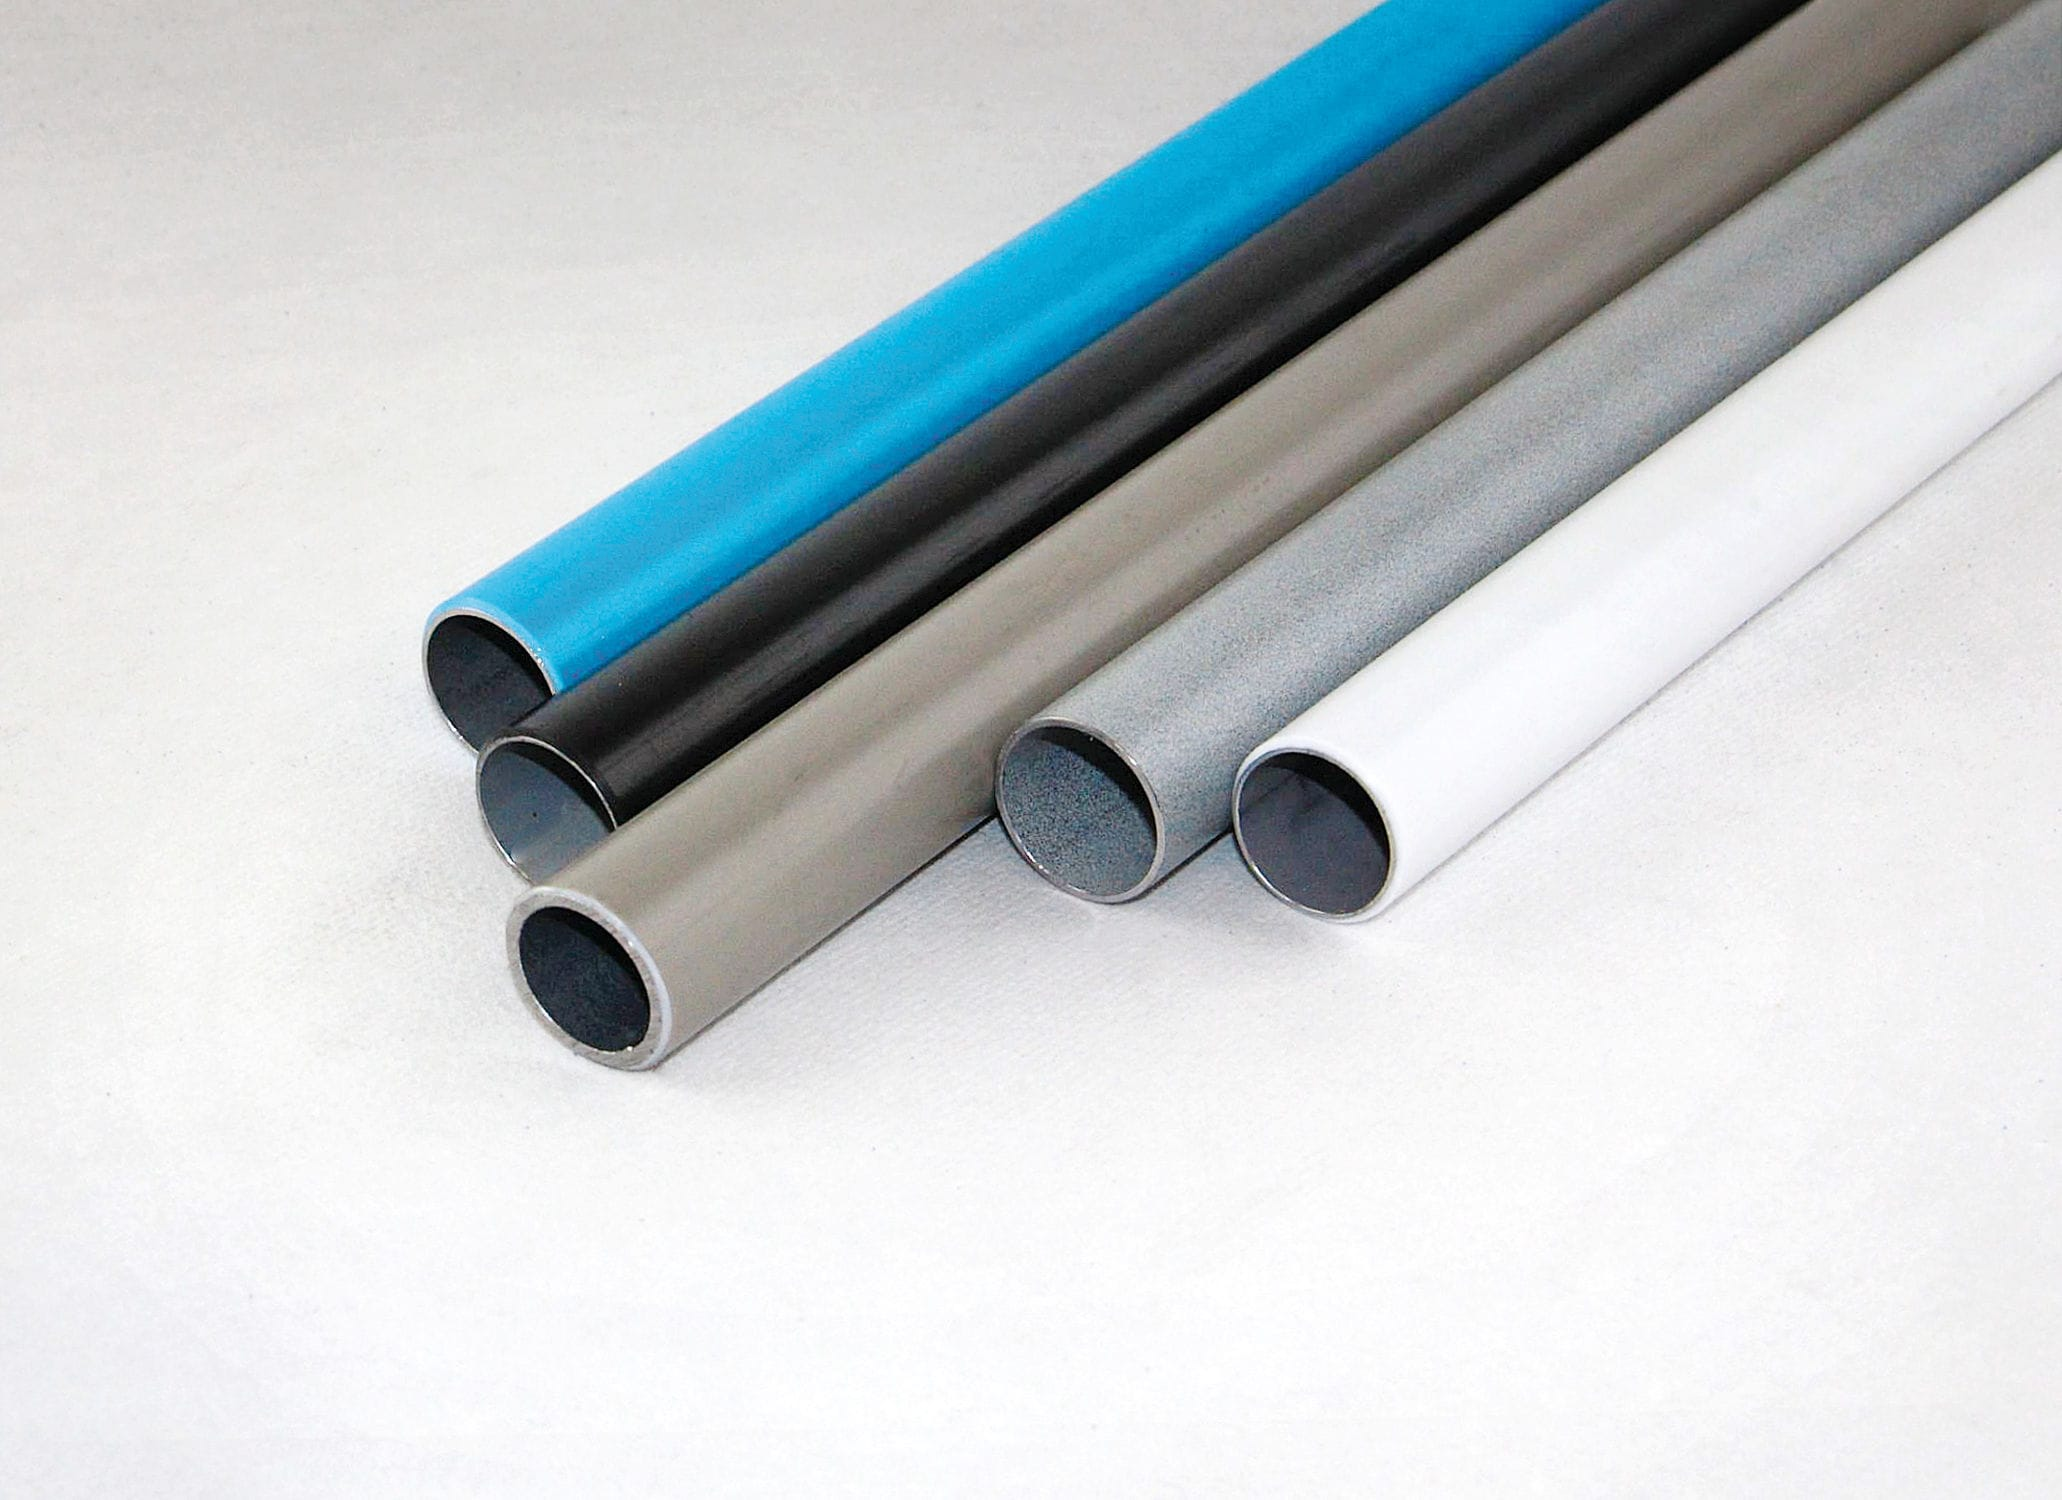 Uv Plastic Pipe Hot Selling High Quality Resistant Pvc Electrical Conduitflexible Wire Conduit Product On Alibabacom Water Corrosion Oil Eco